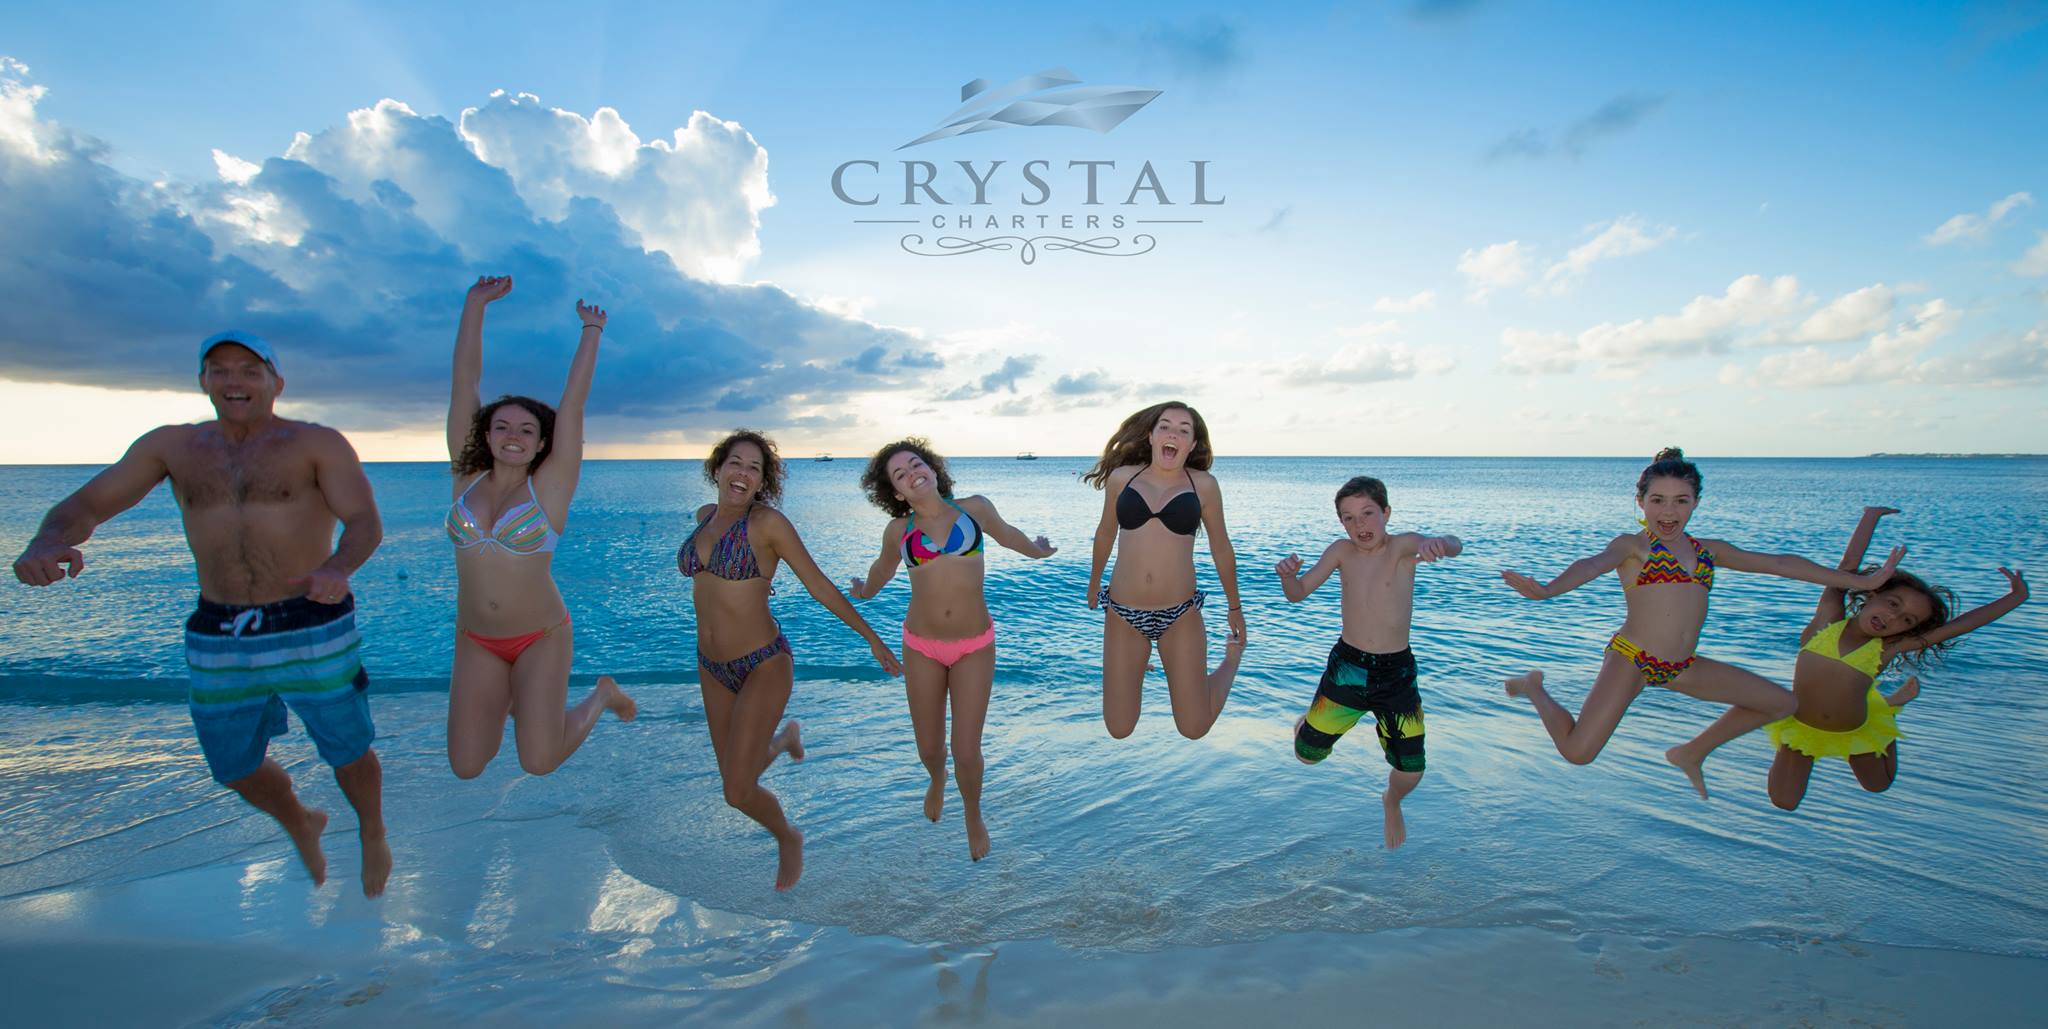 Crystal_charters_cayman